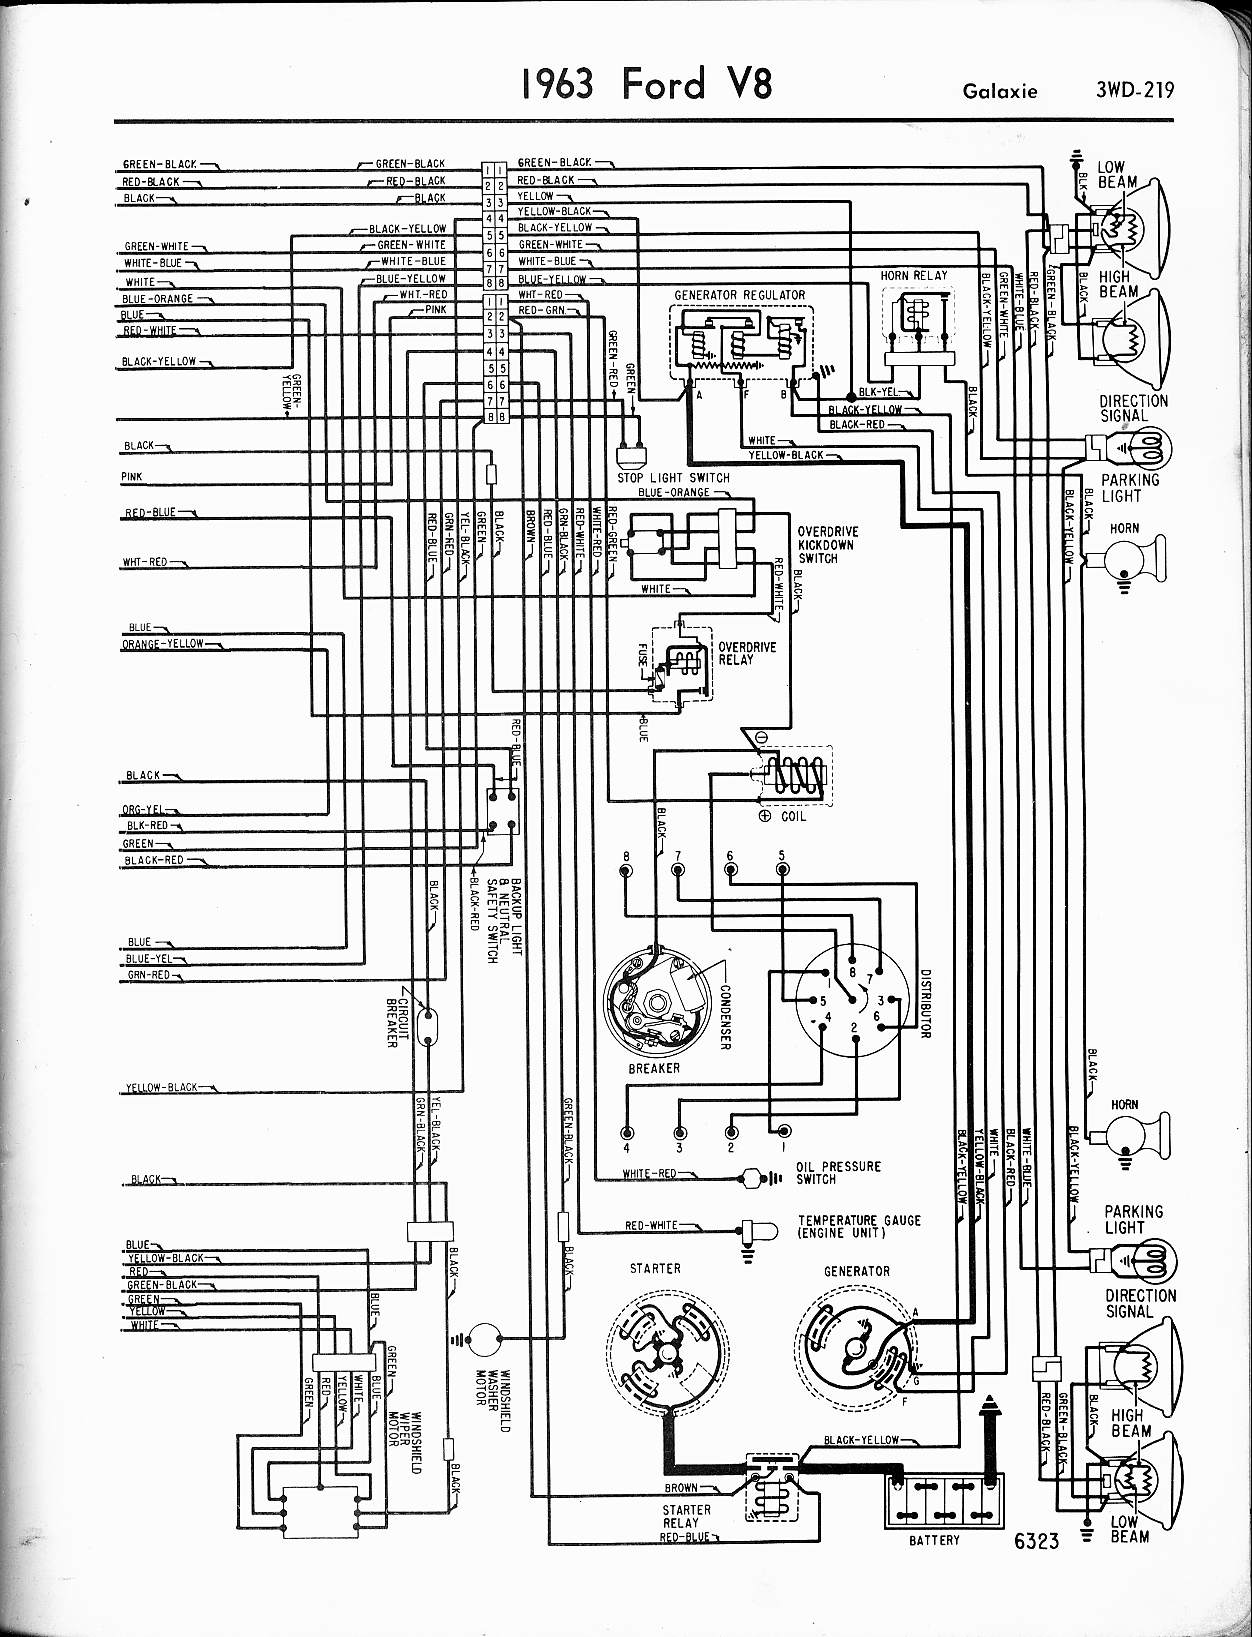 477797 Circuit Breaker on 1964 Ford Fairlane Wiring Diagram